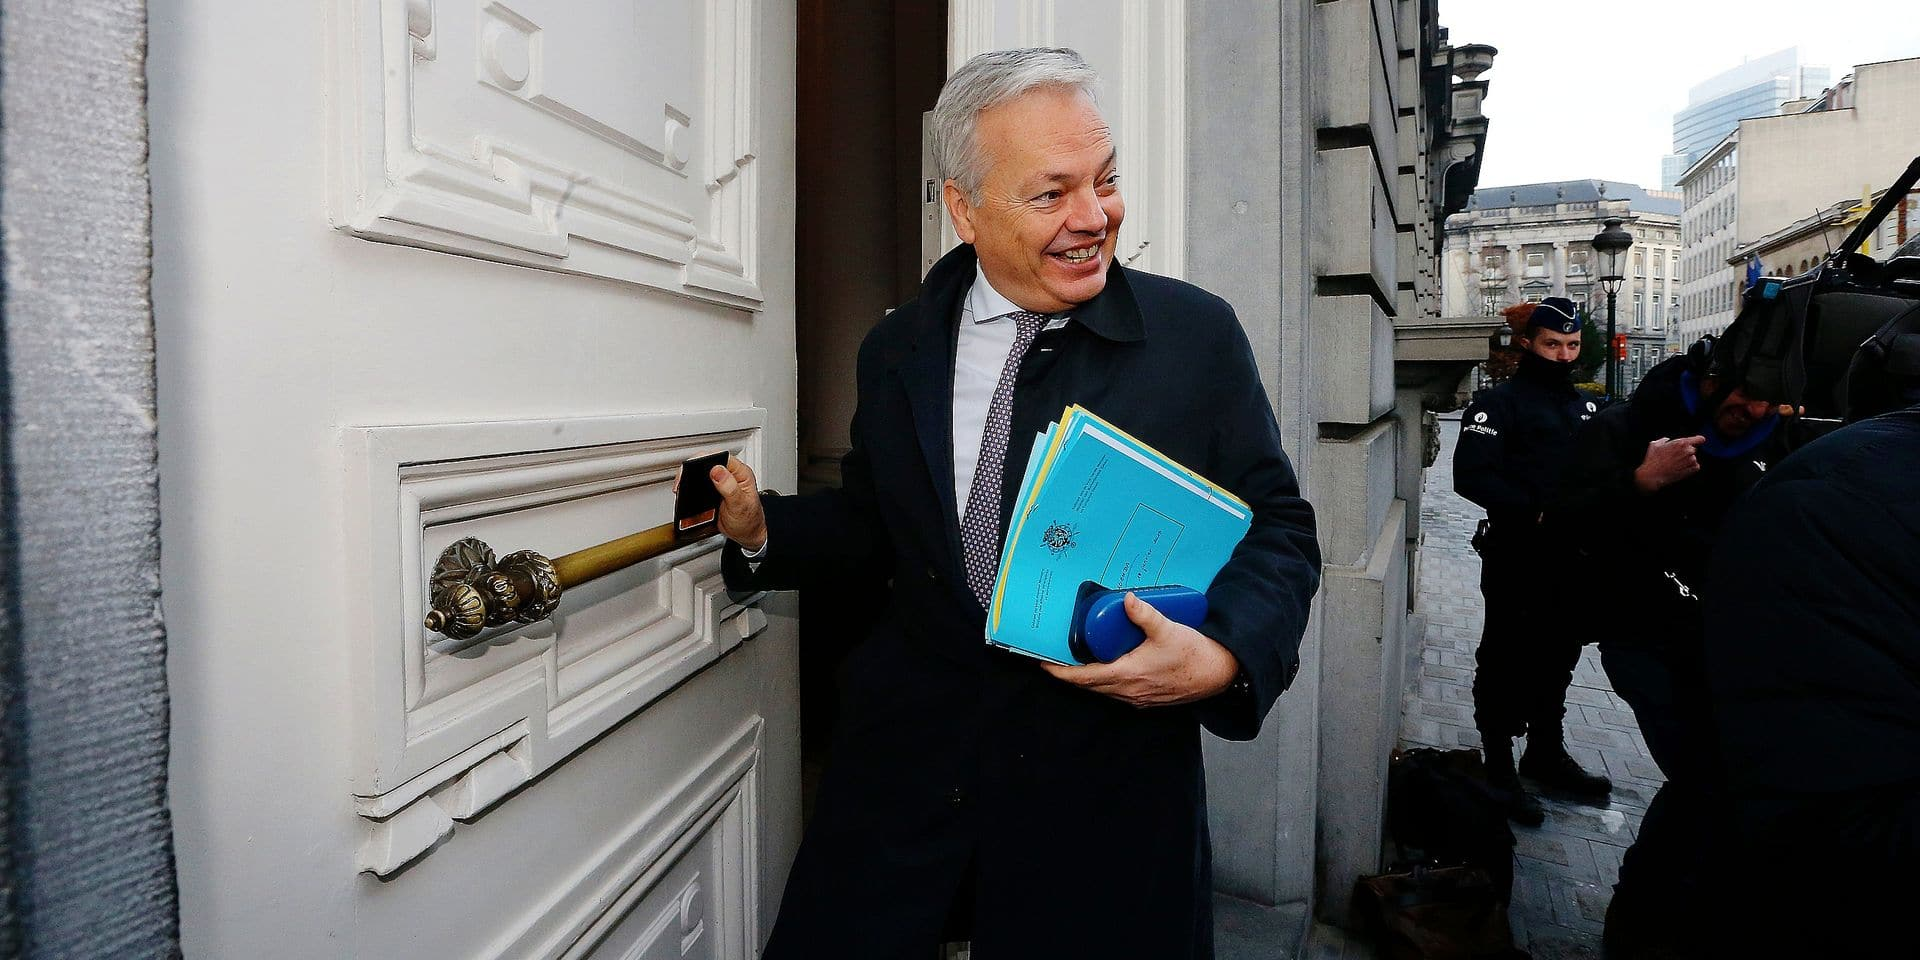 Vice-Prime Minister and Minister of Foreign Affairs and Defence Didier Reynders arrives for a Minister's council meeting of the Federal Government, in Brussels, Friday 18 January 2019. BELGA PHOTO NICOLAS MAETERLINCK